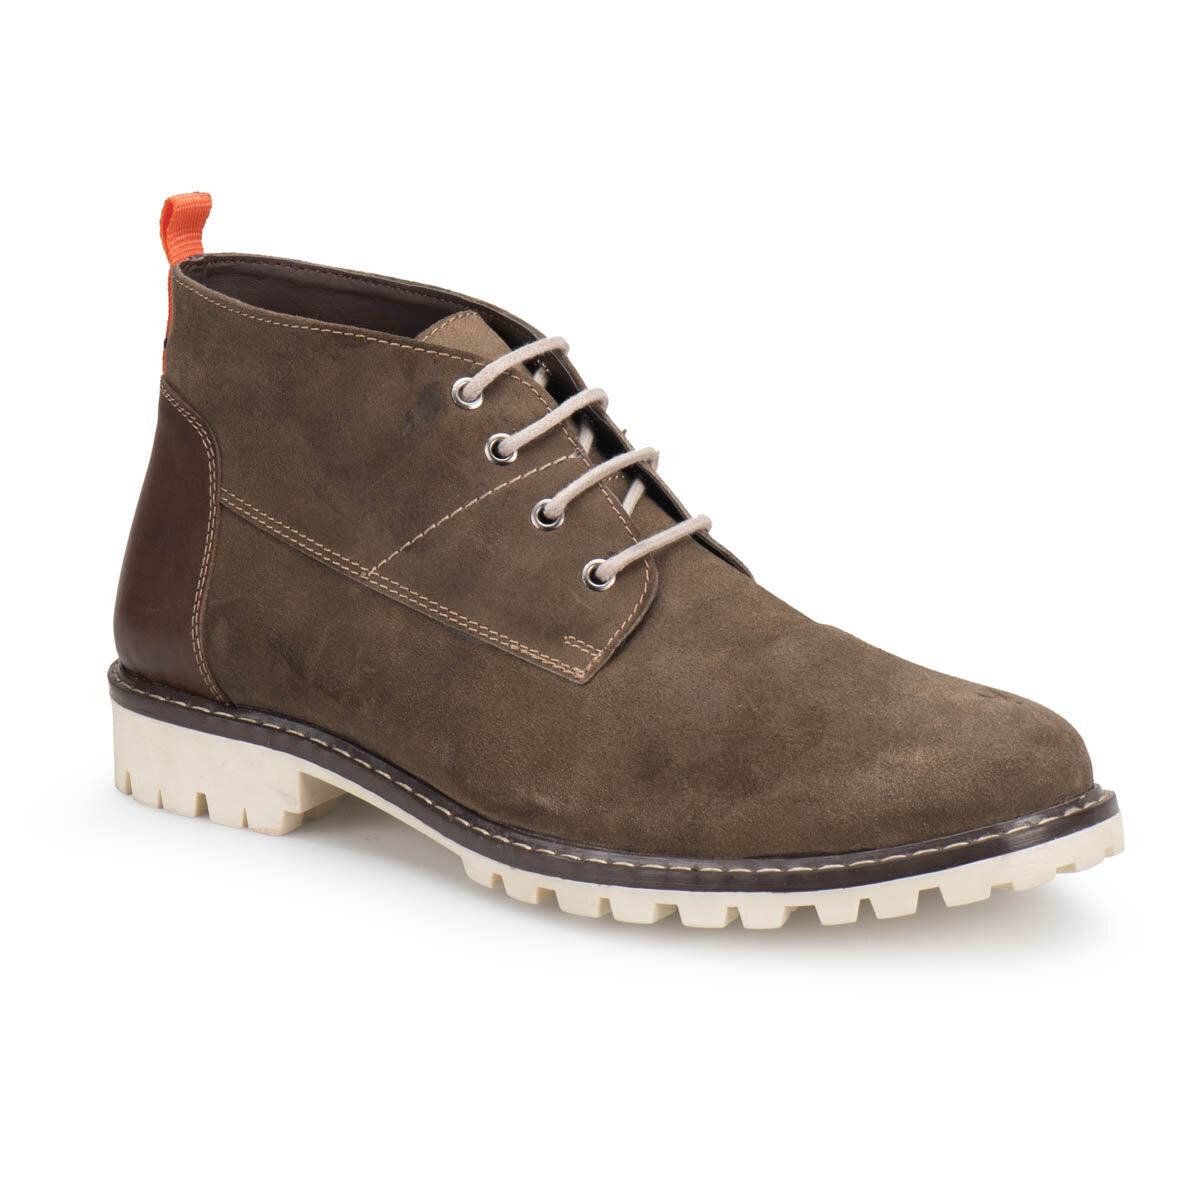 FLO 228 Sand Color Men Boots Forester